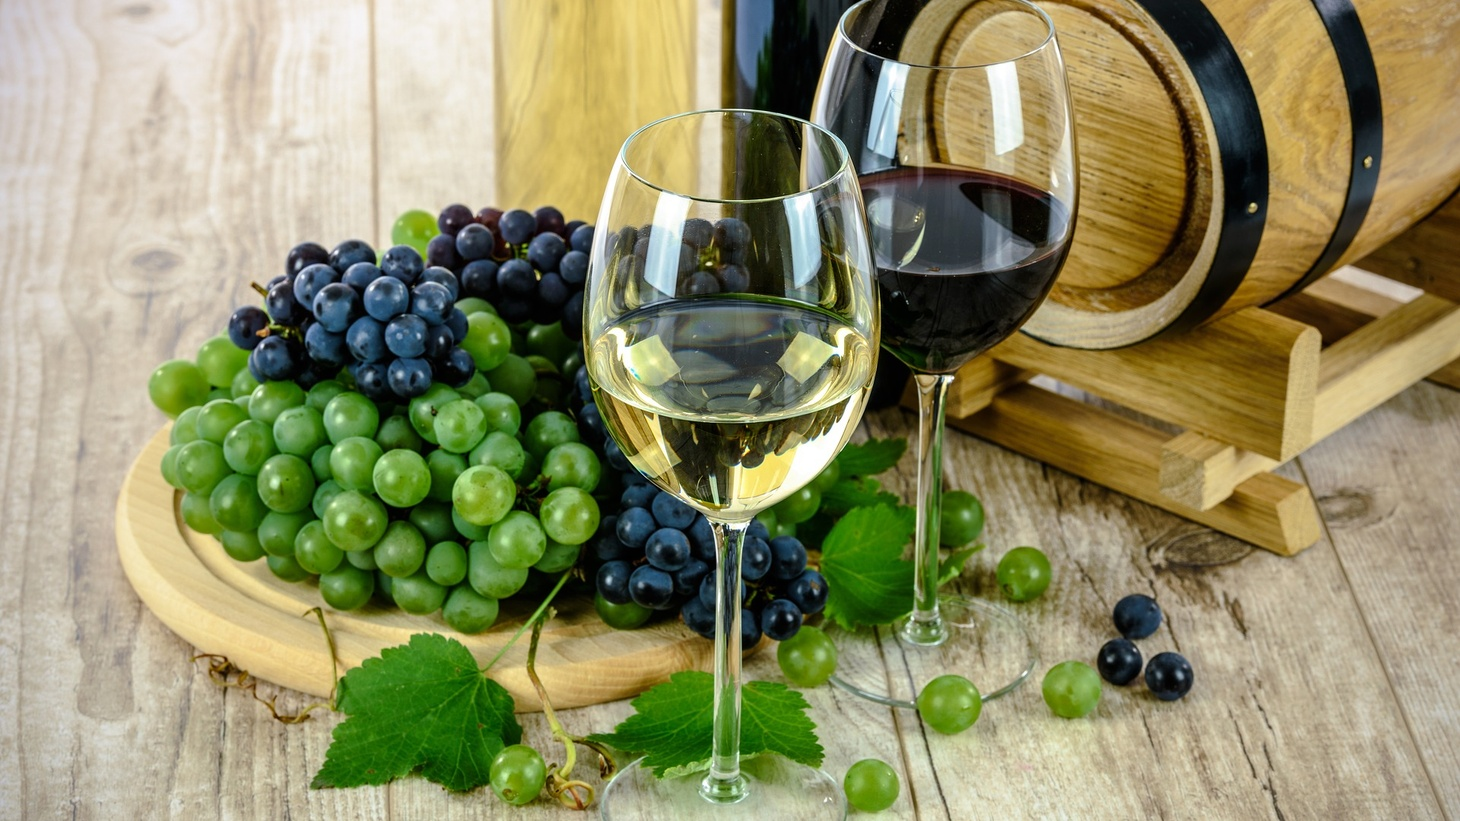 Grapes and wine.